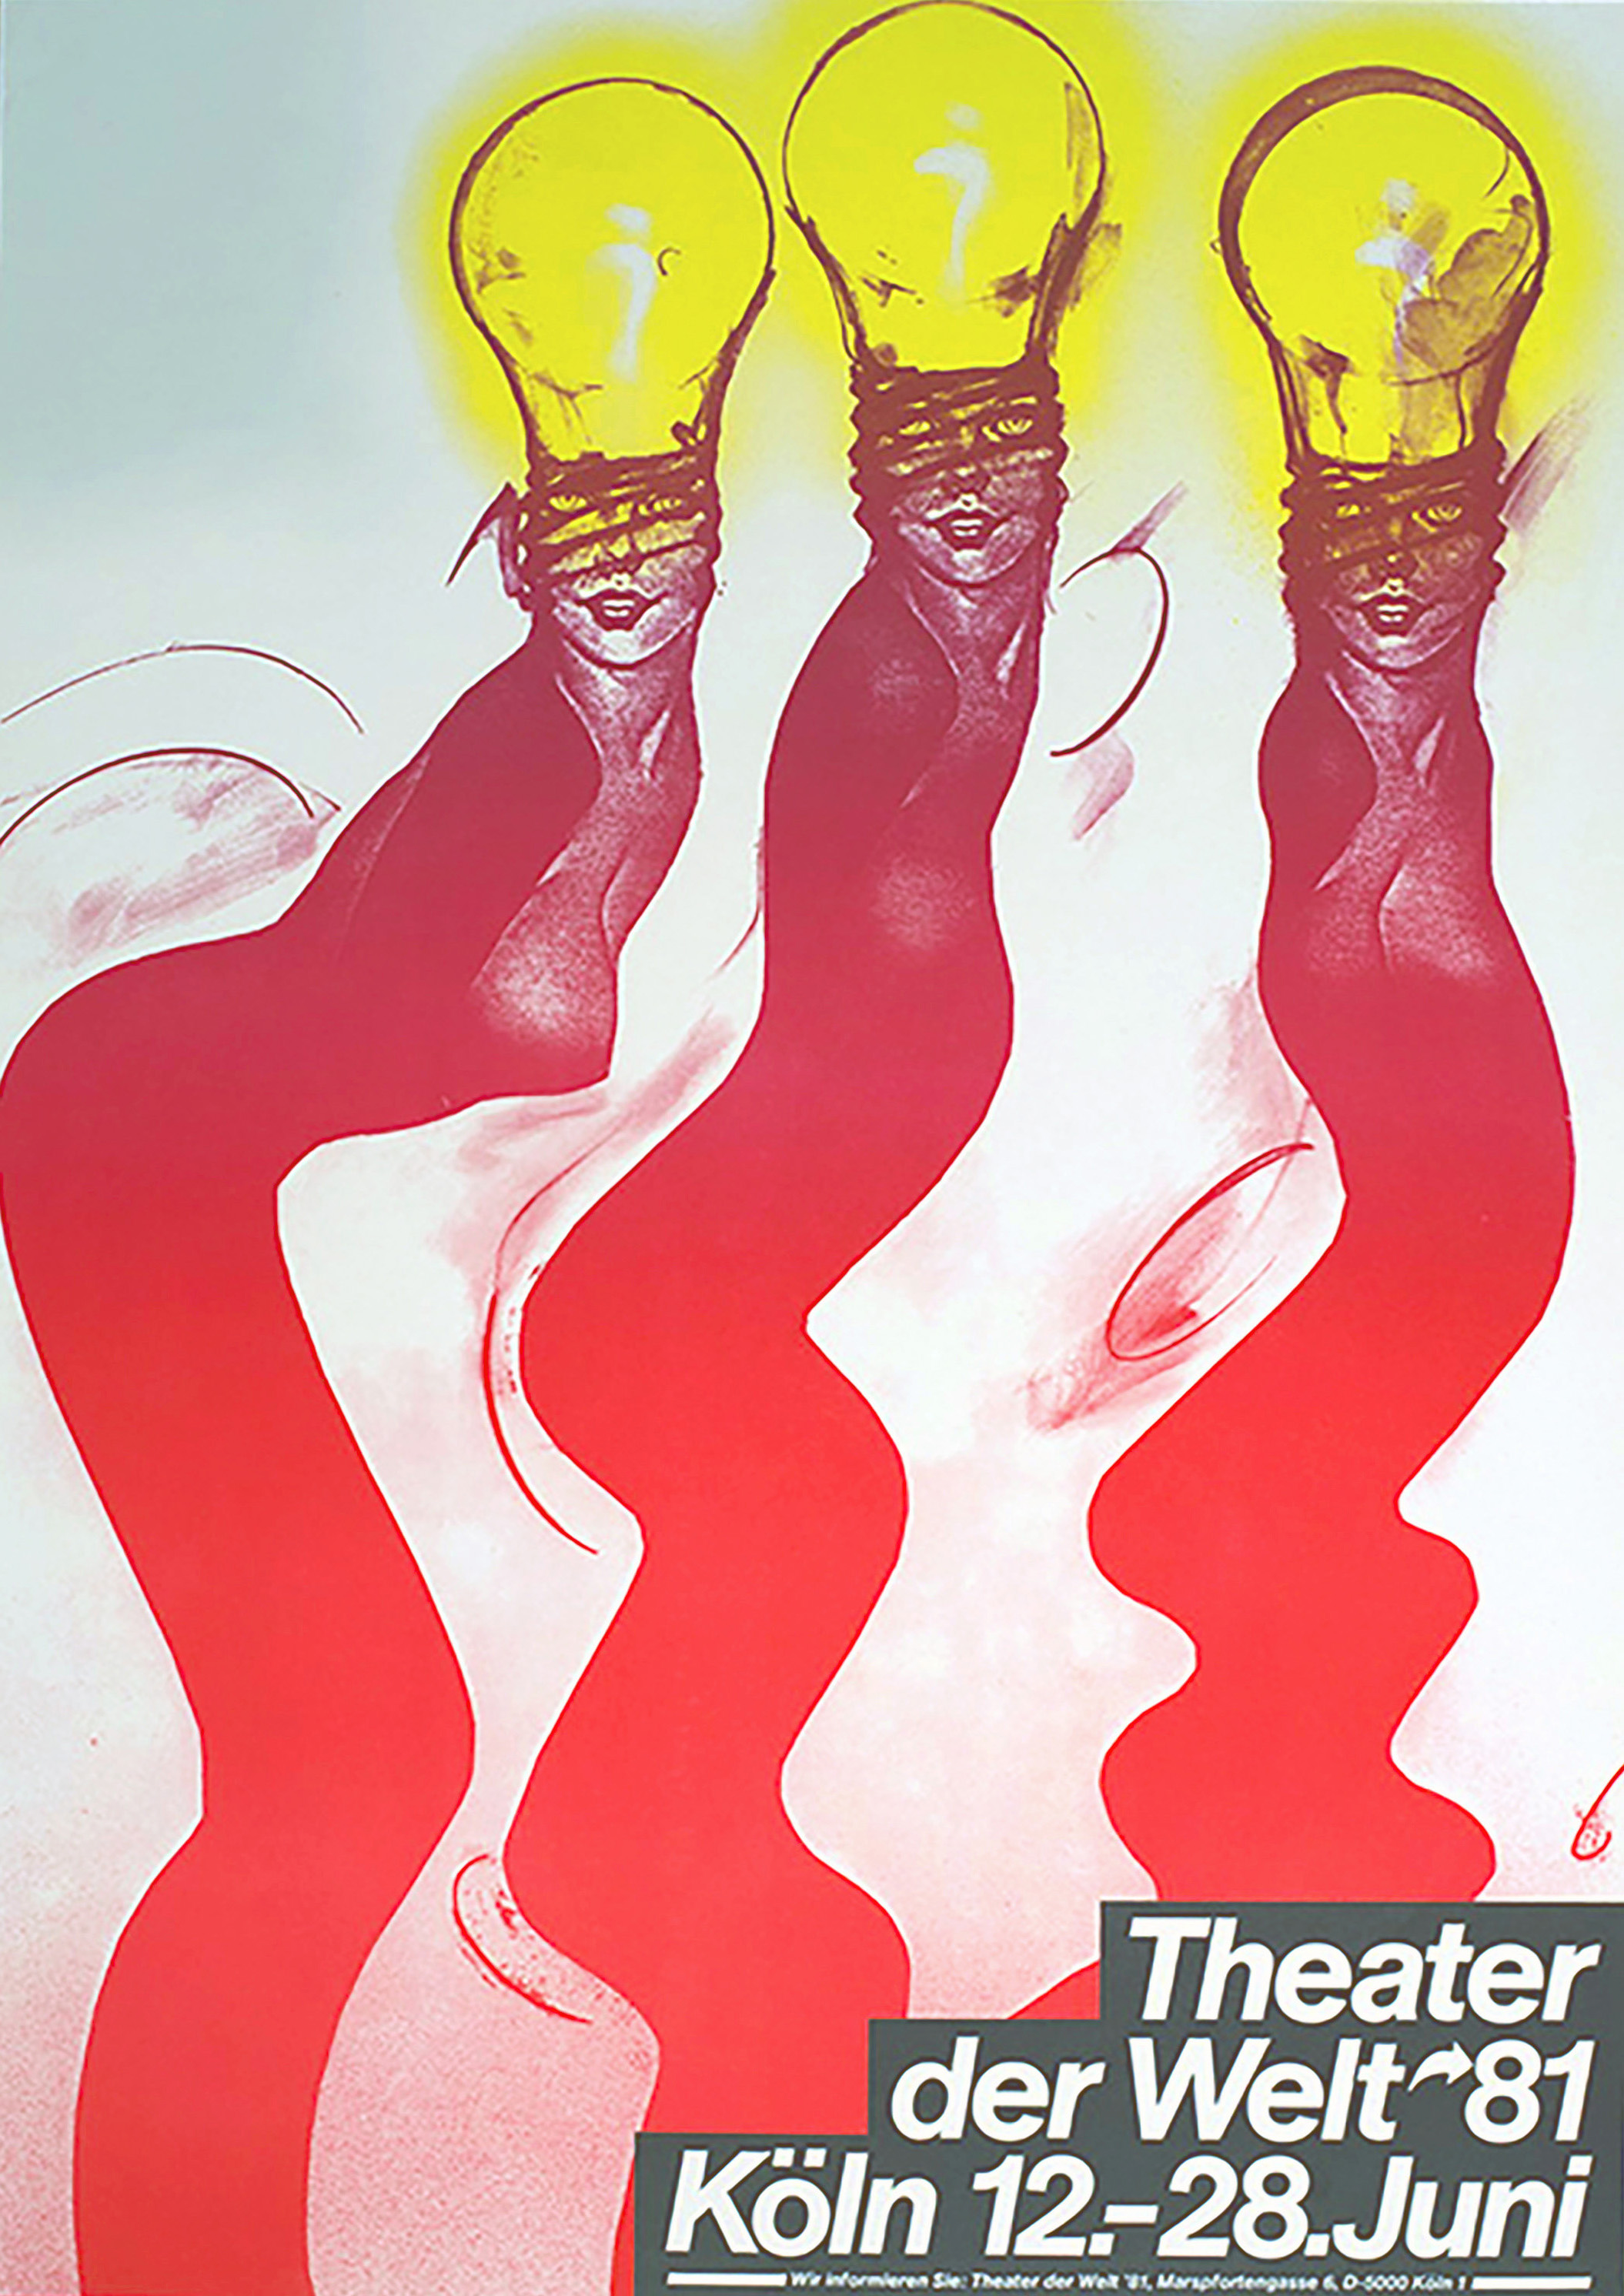 Three wavy red columns, topped by women's faces which merge with the threads of the three yellow light bulbs on top of their heads.